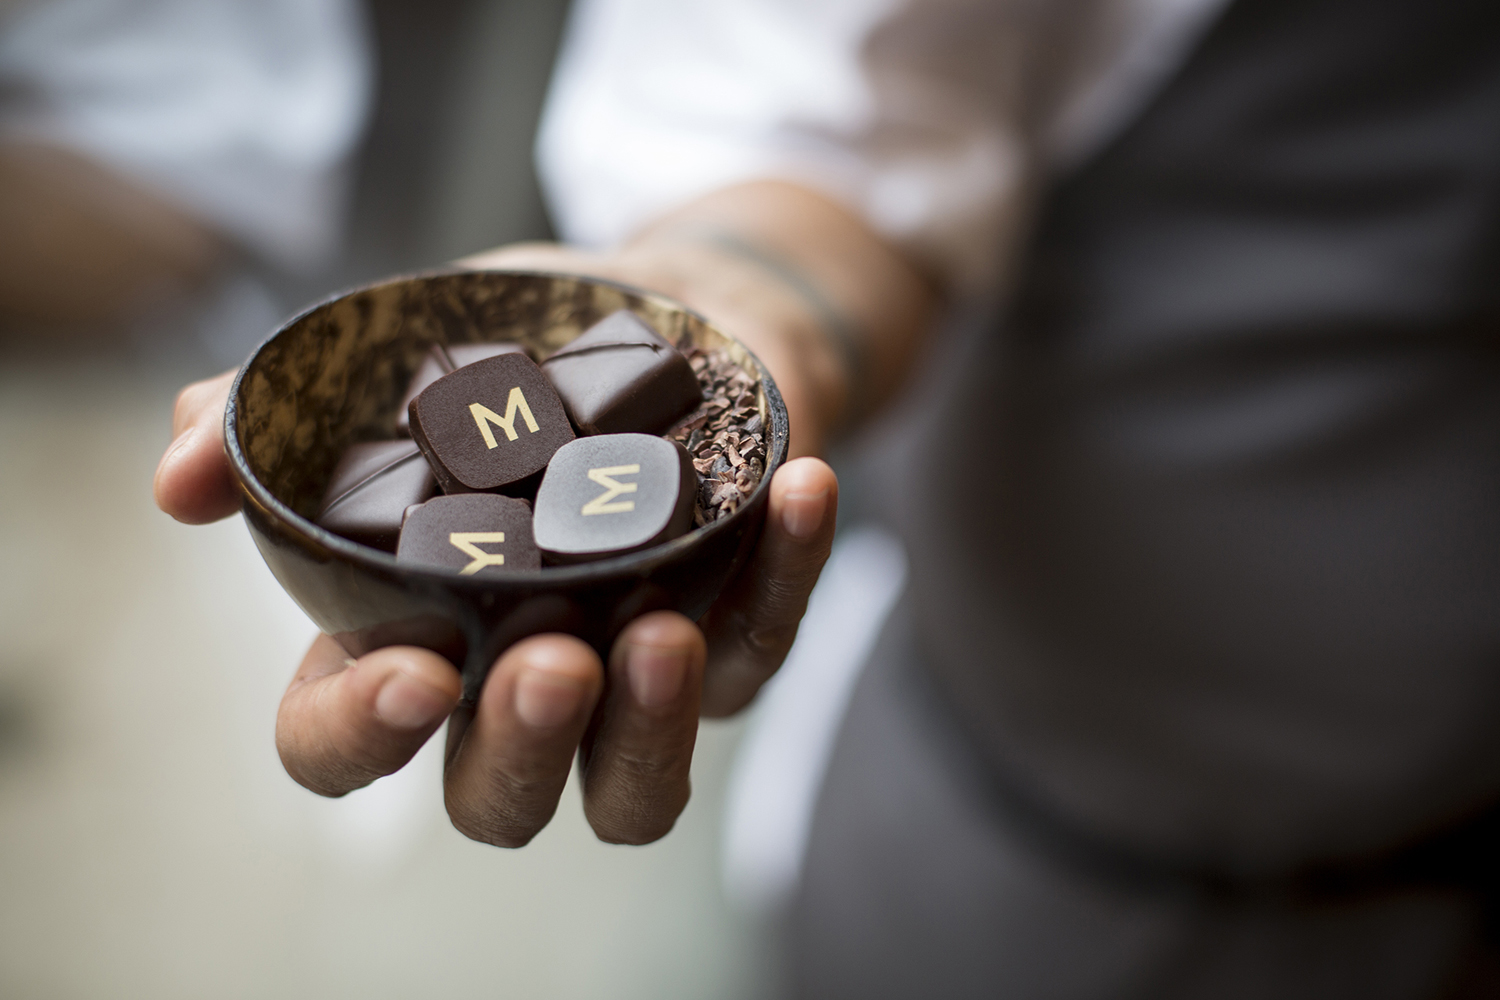 Logo and branded chocolates designed by Bibliothèque for Monica Galetti's new London restaurant Mere